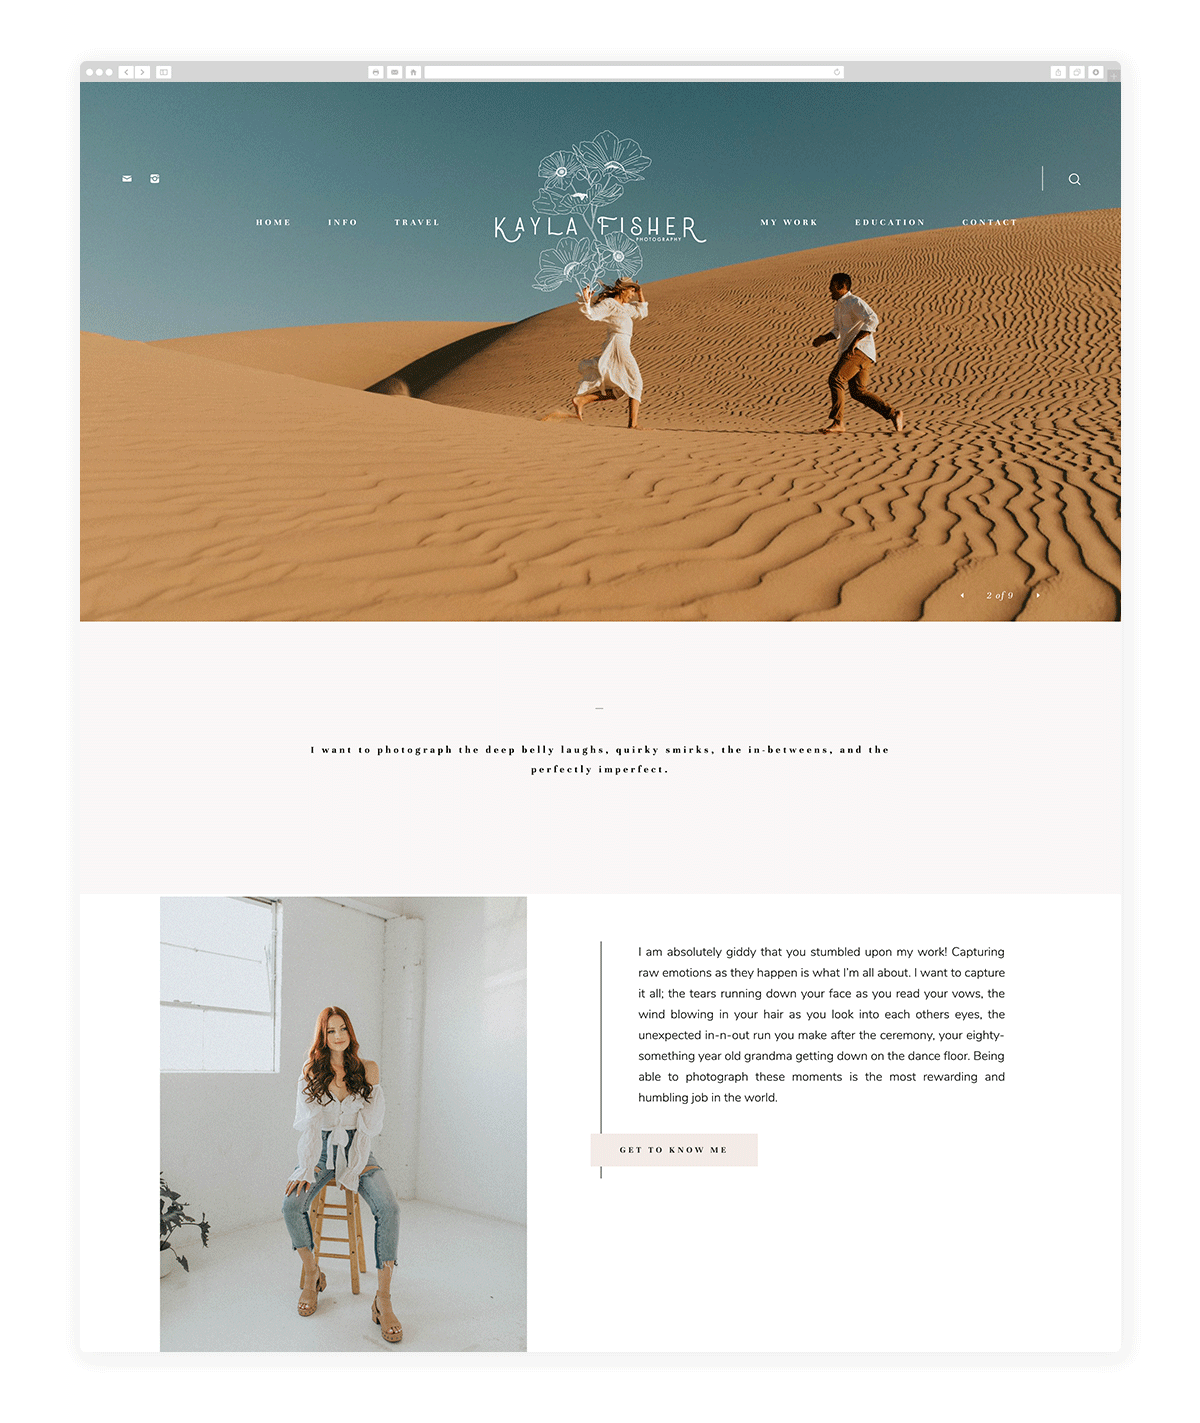 kayla-fisher-website-examples-template (1)